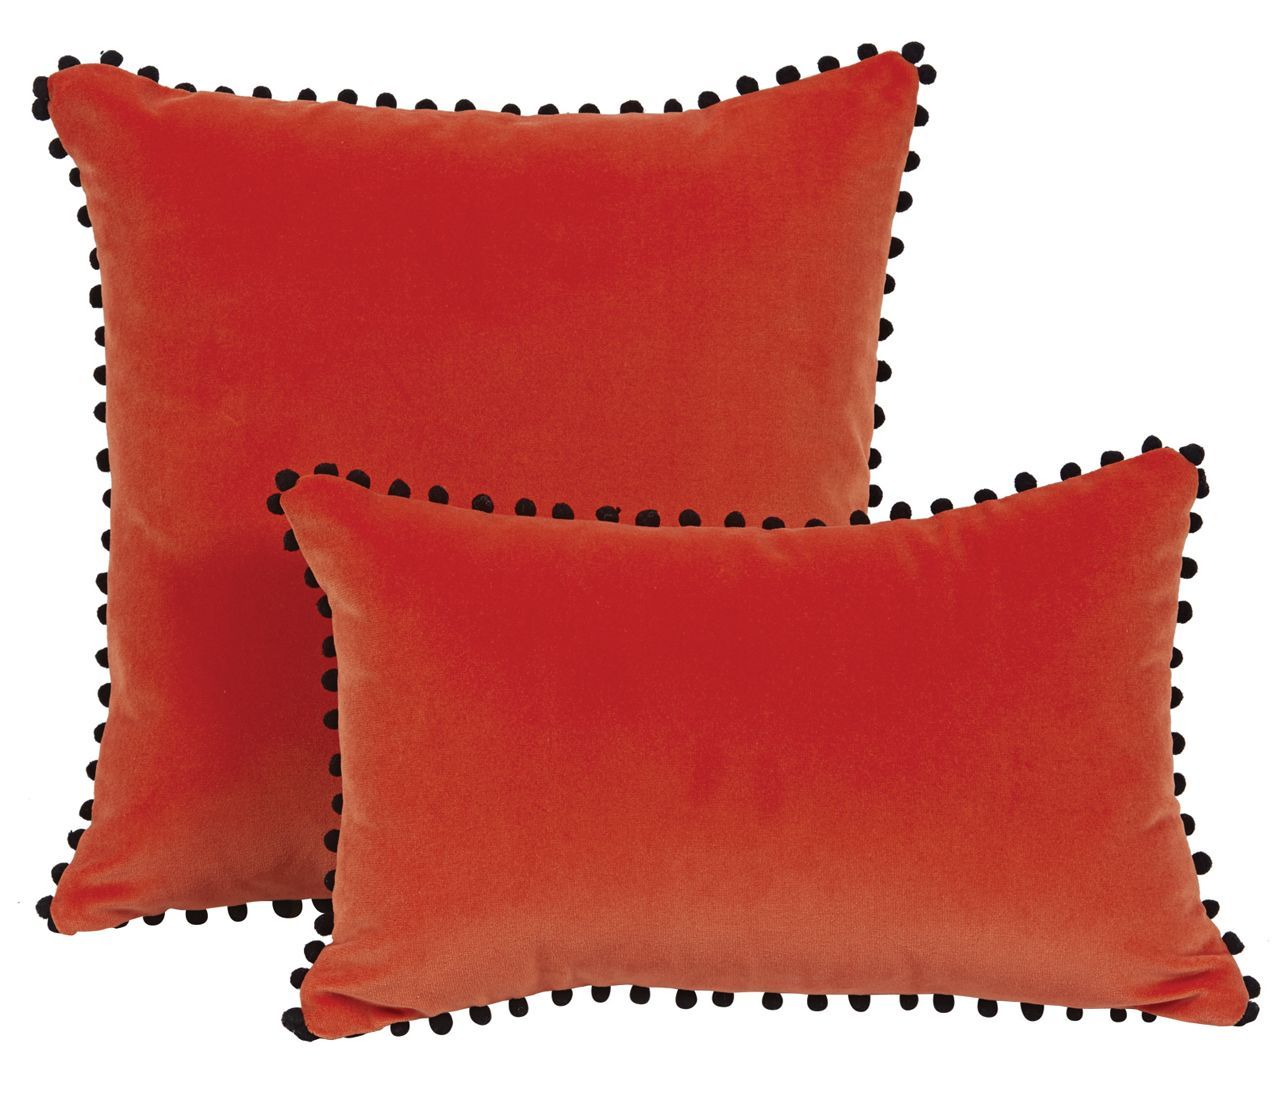 coussin velours orange pompons noirs farandole 45x45 autrement dit. Black Bedroom Furniture Sets. Home Design Ideas